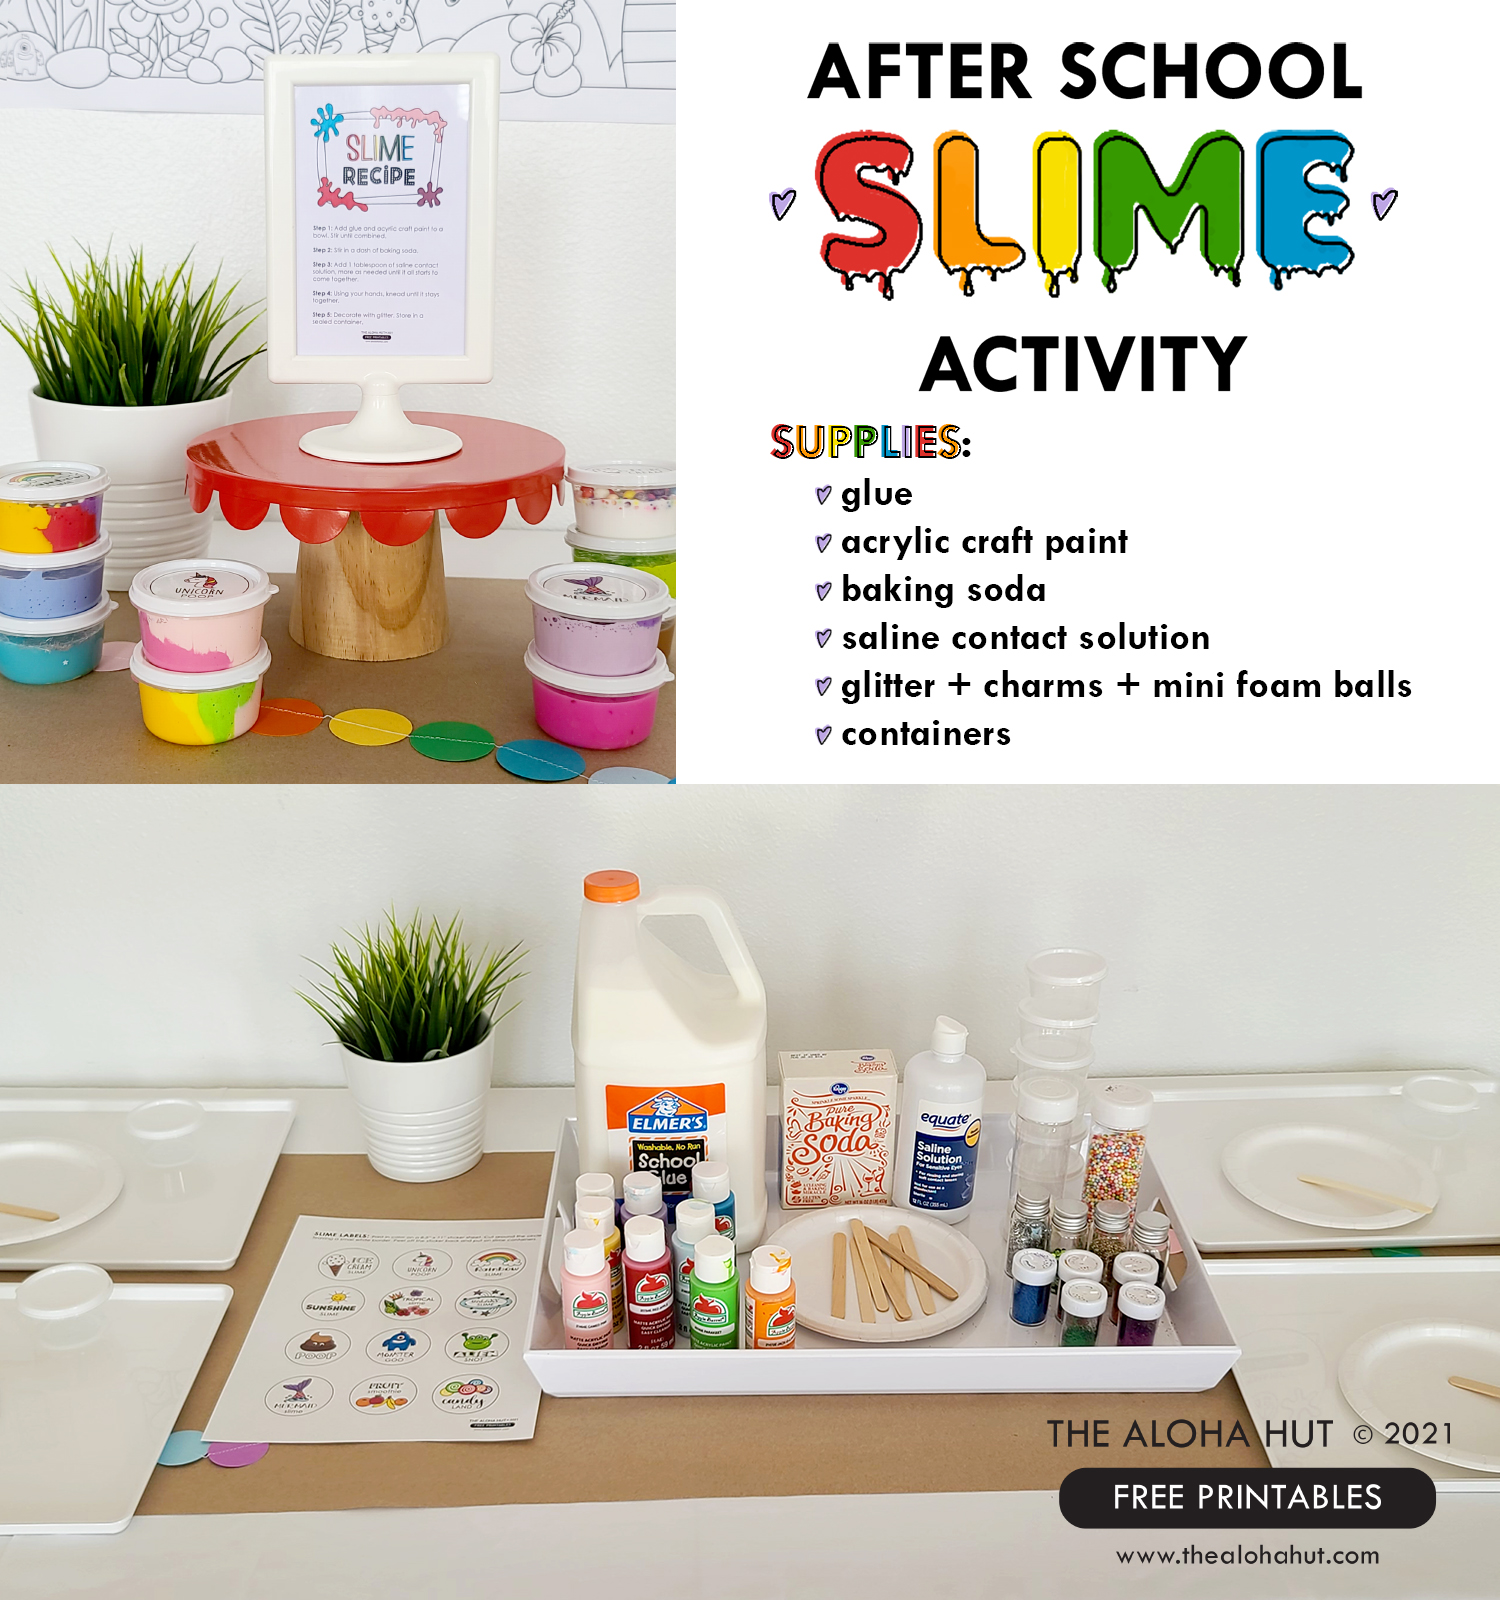 After School Slime Activity - Recipe + Supplies FREE Printables - The Aloha Hut